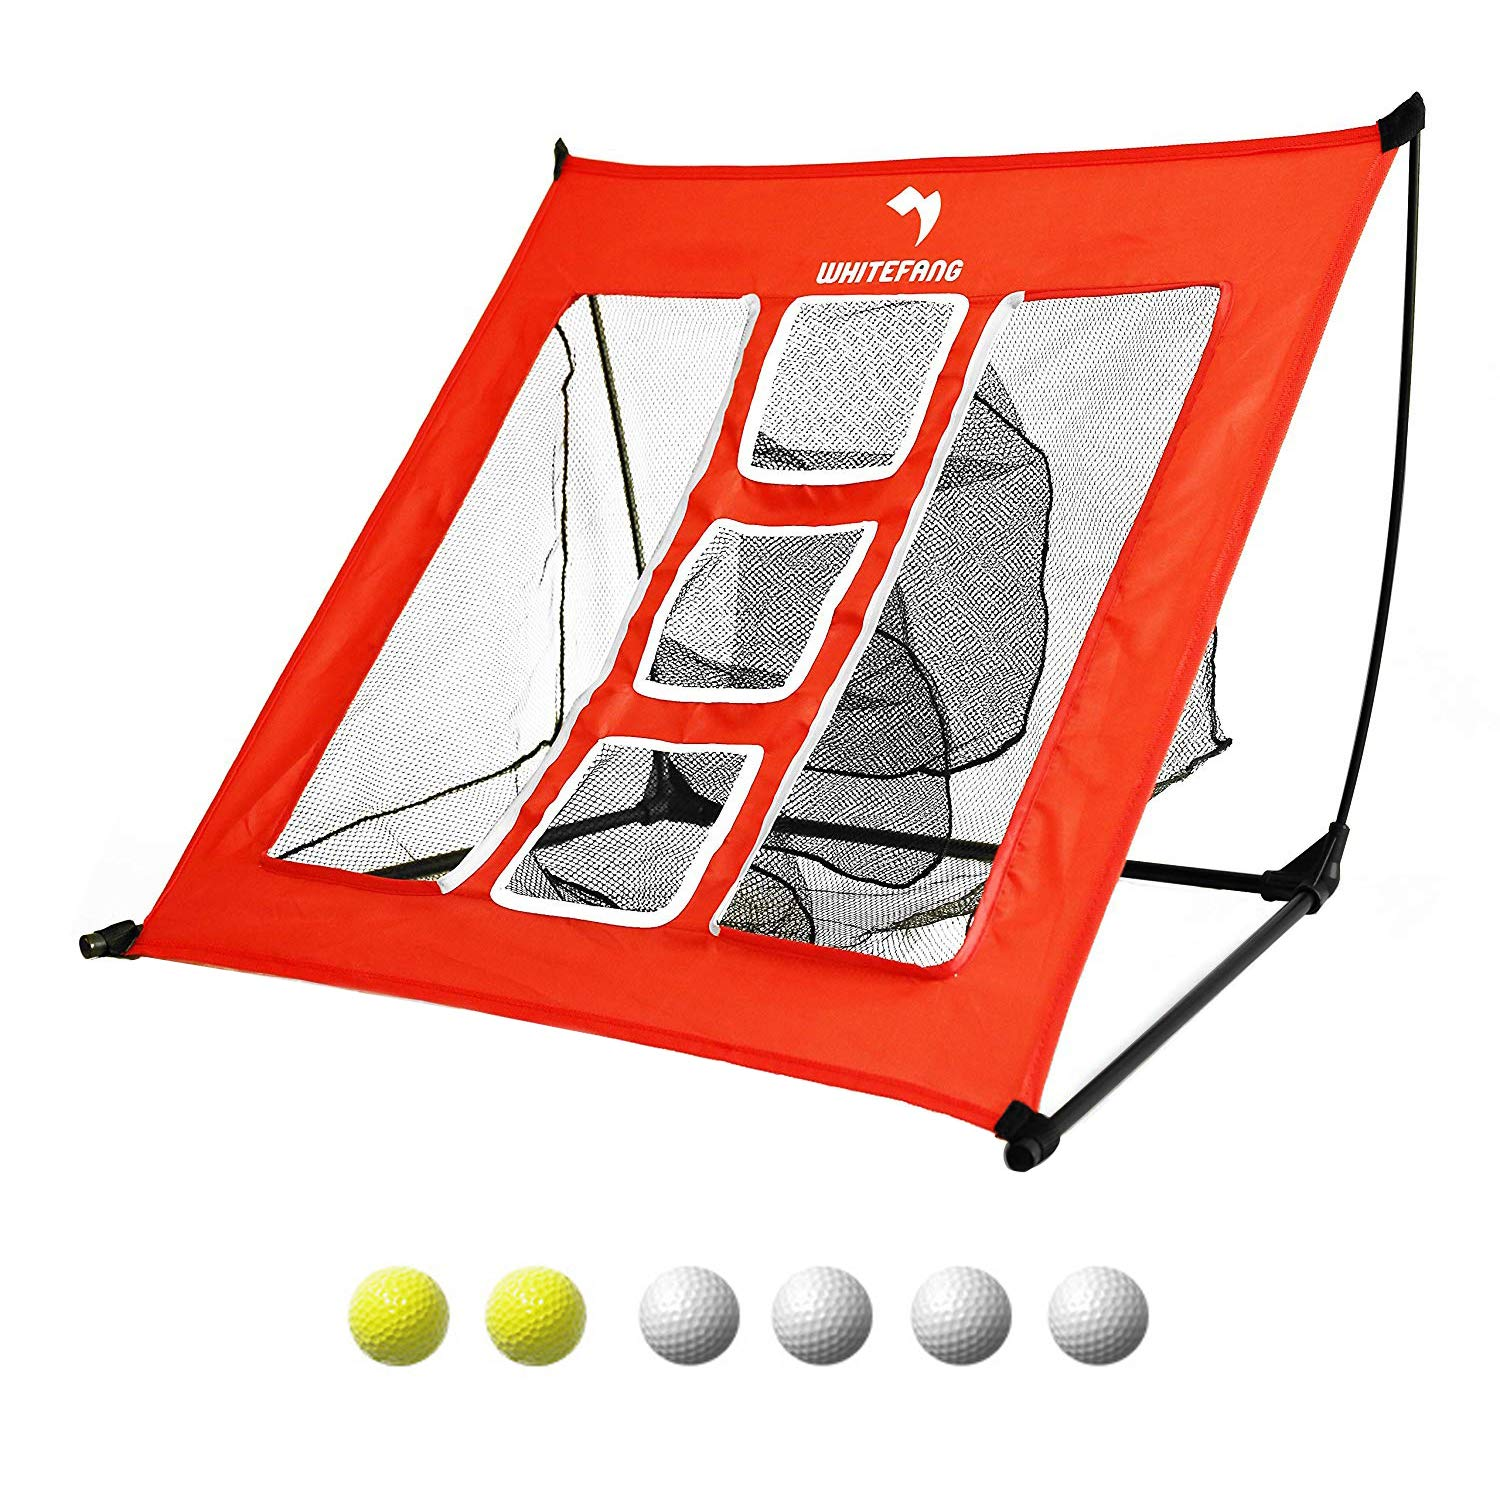 WhiteFang Golf Net | 4 in 1 Golf Practice Set 10x7ft Include Golf Chipping Net|Golf Hitting Mat|Golf Balls with Portable Carry Bag for Backyard/Indoor/Outdoor (4 in 1.)